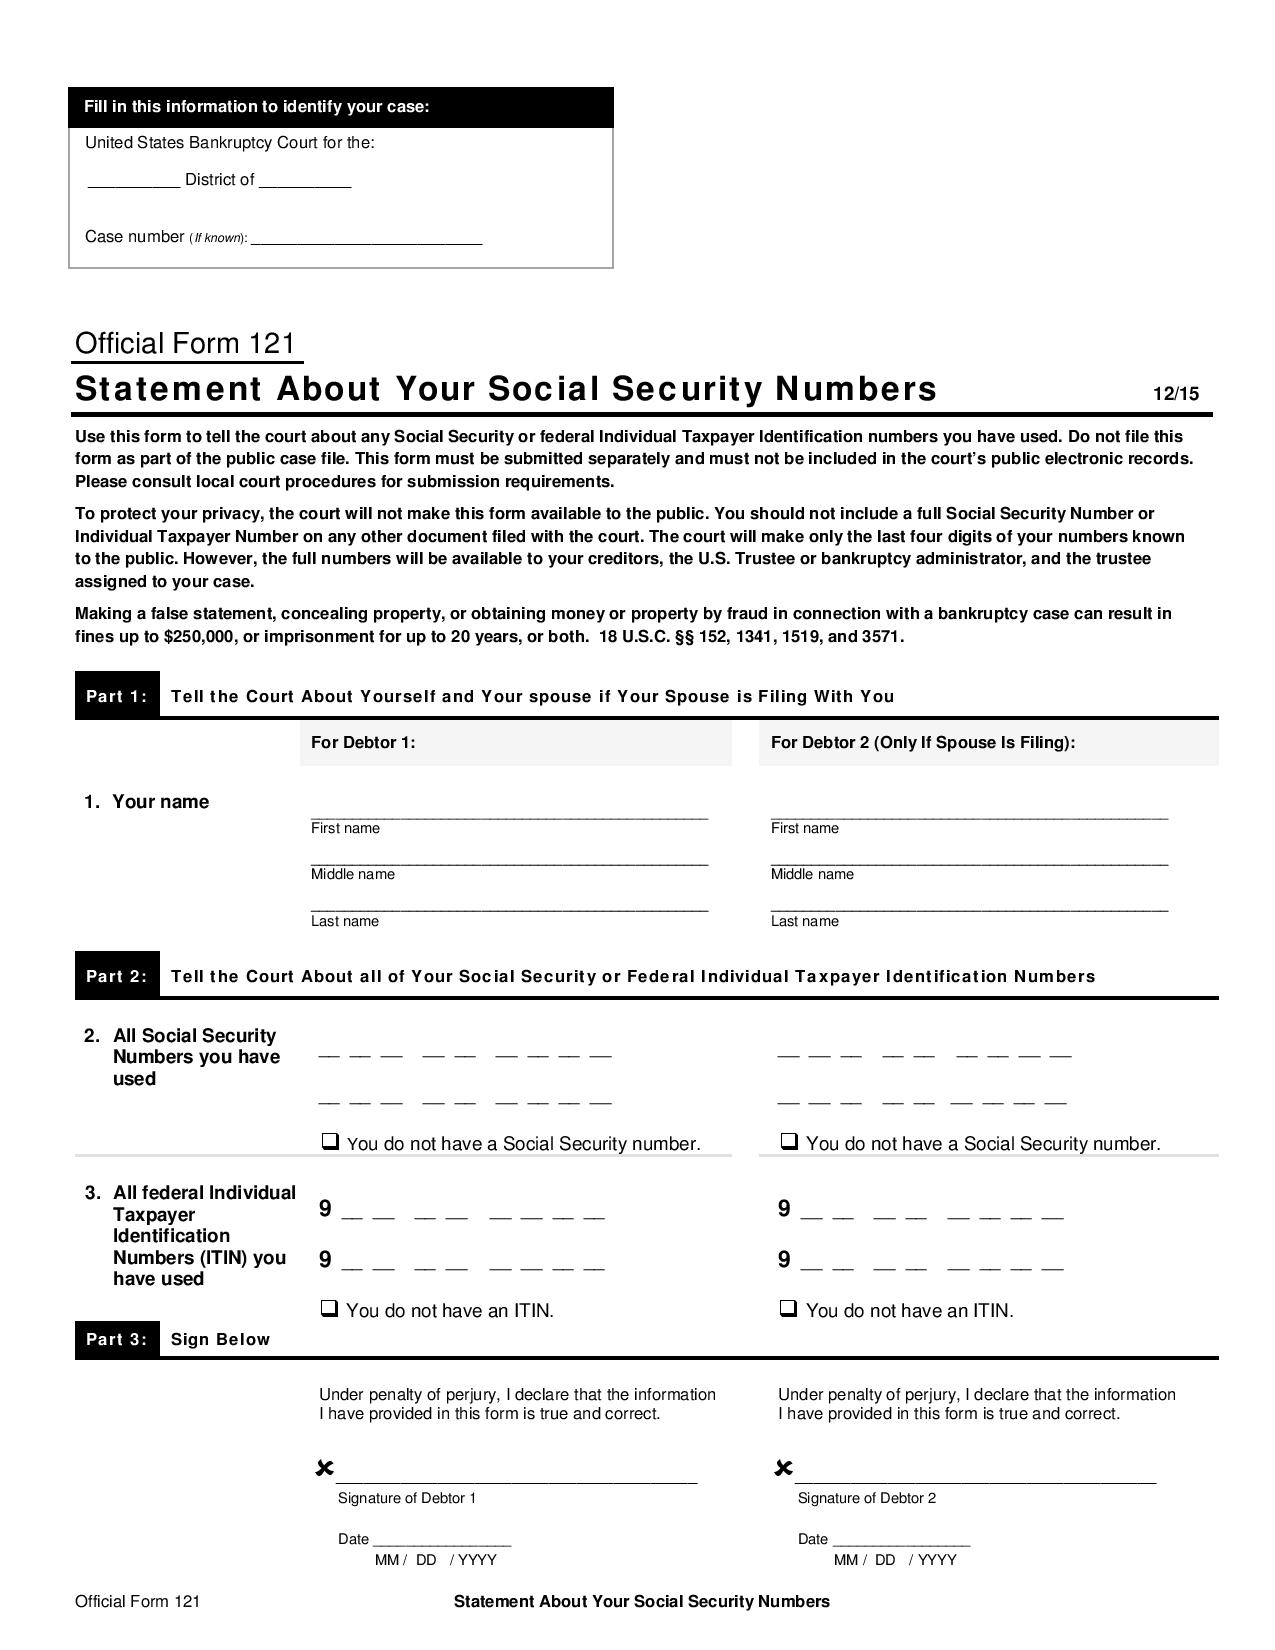 Free official form 121 statement about your social security numbers official form 121 statement about your social security numbers thecheapjerseys Gallery